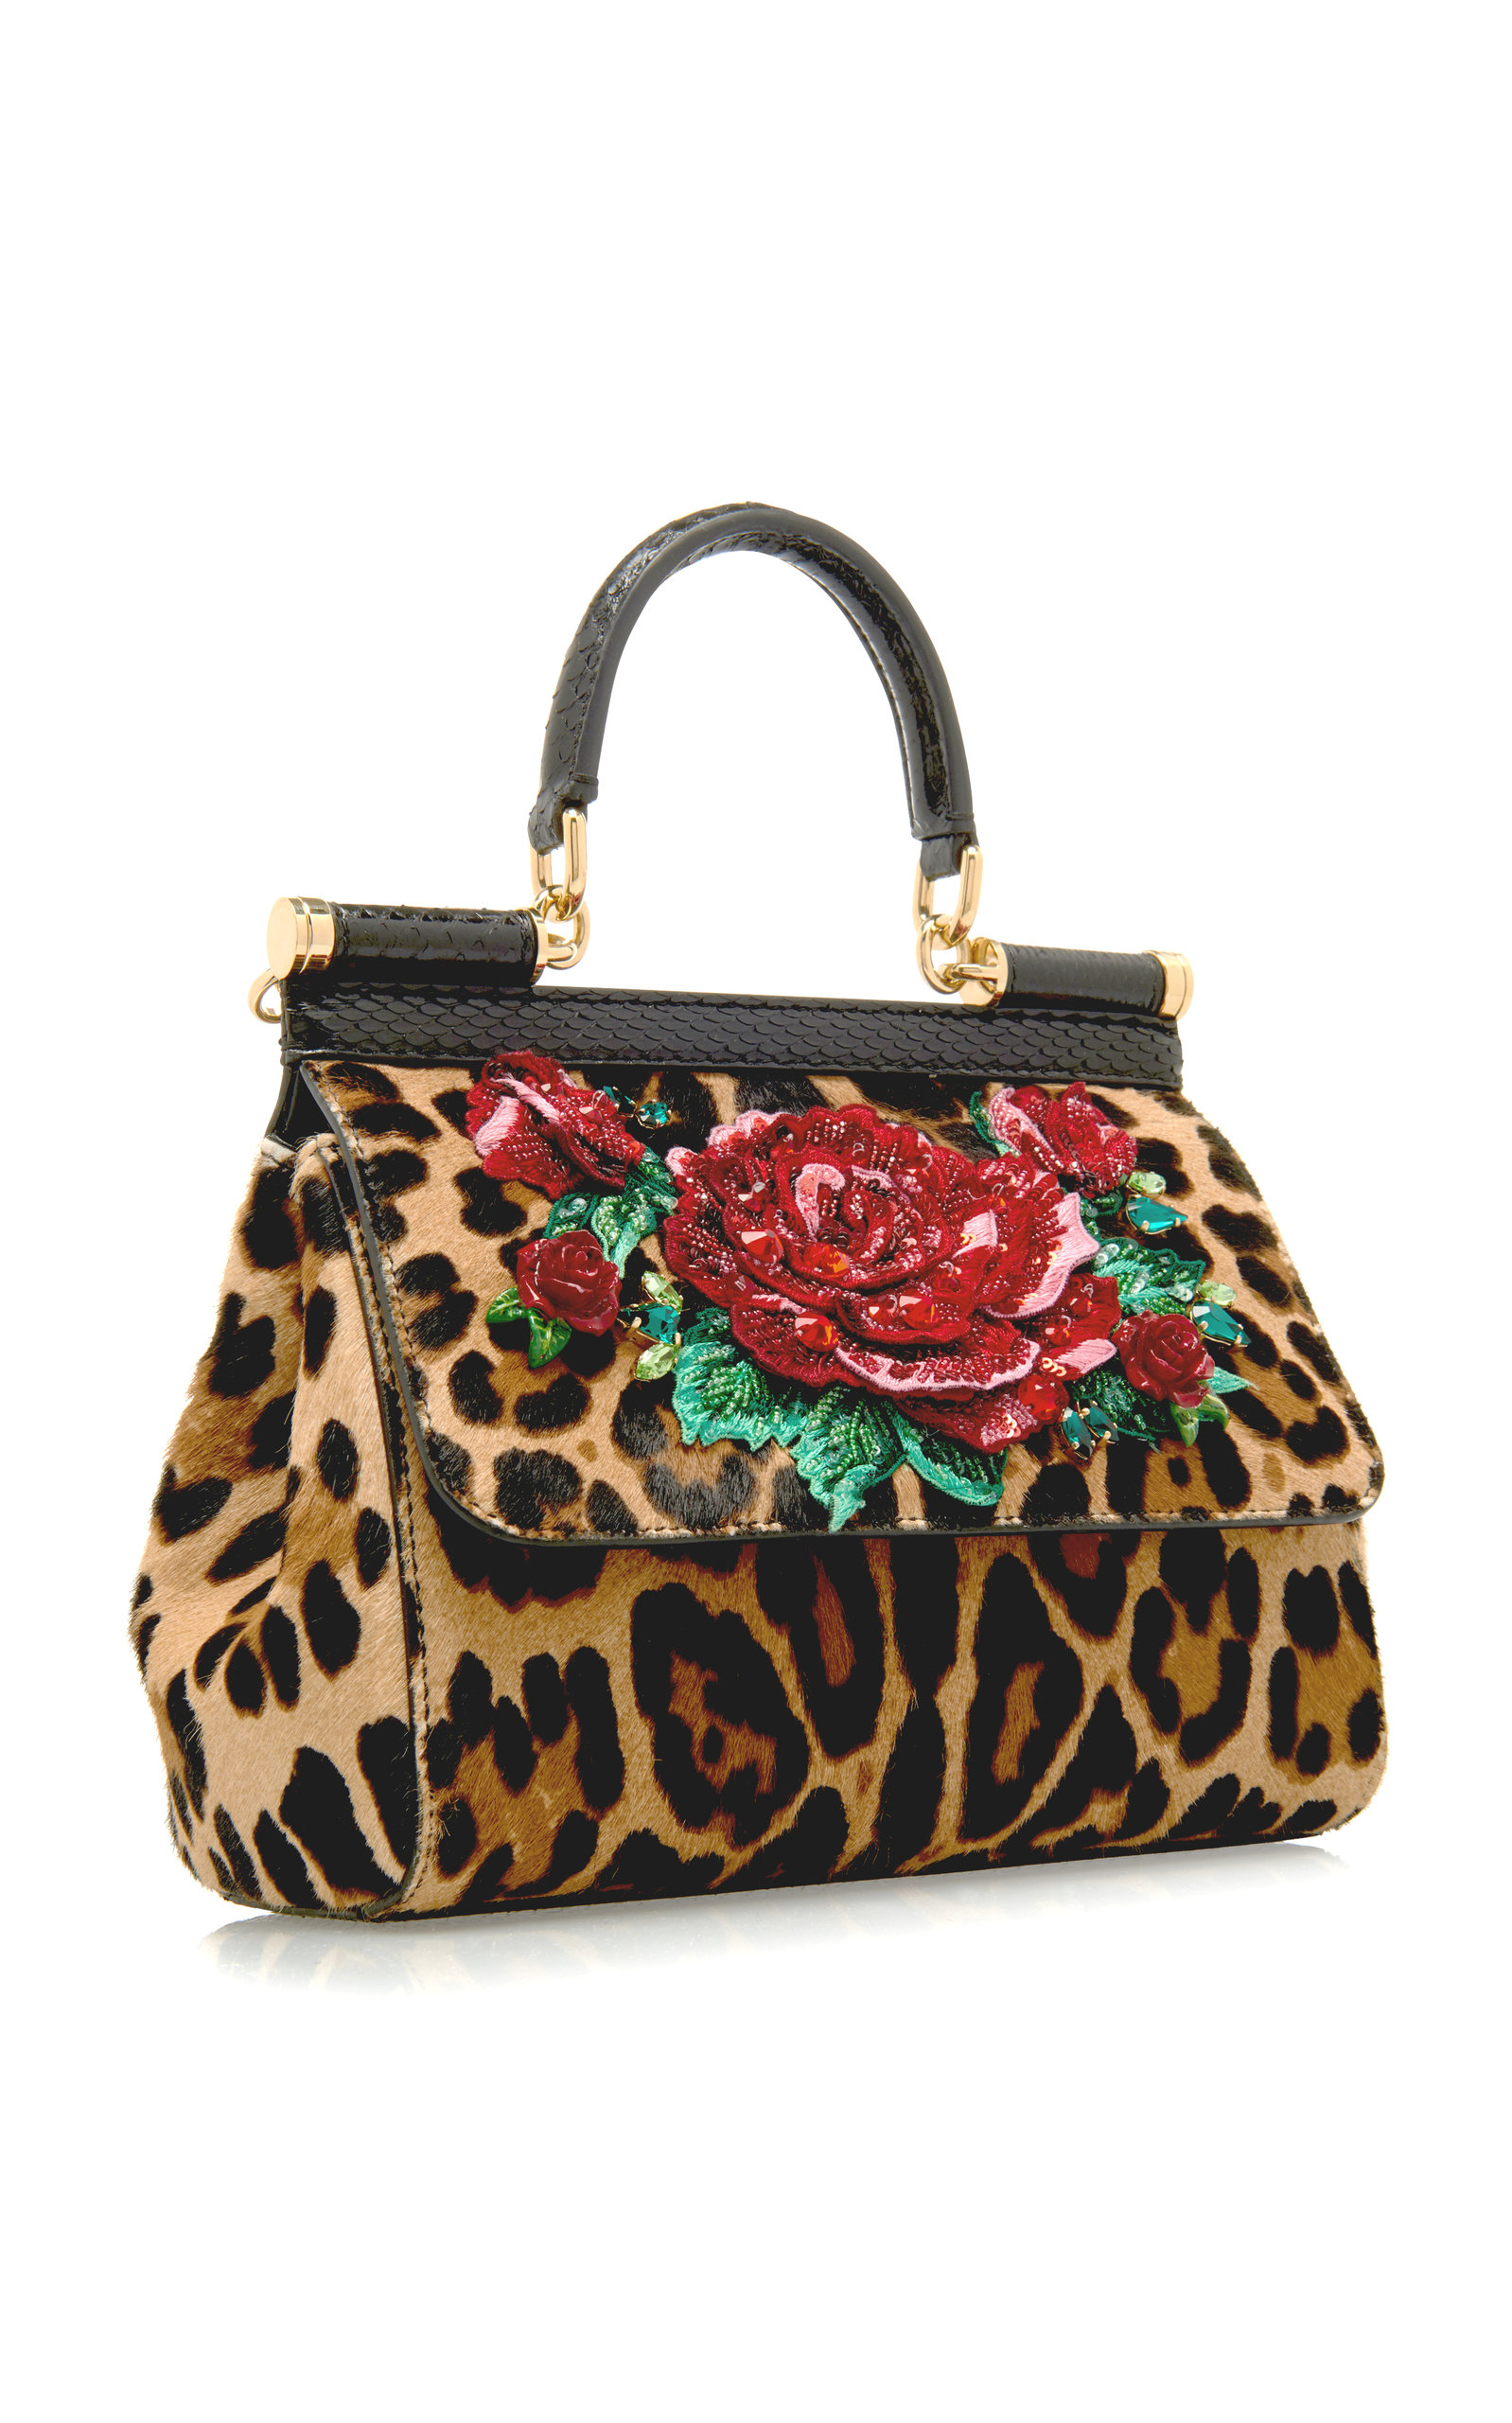 8c07dc5a37 Sicily Embellished Leopard-Print Pony Hair Bag by DOLCE   GABBANA Now  Available on Moda Operandi